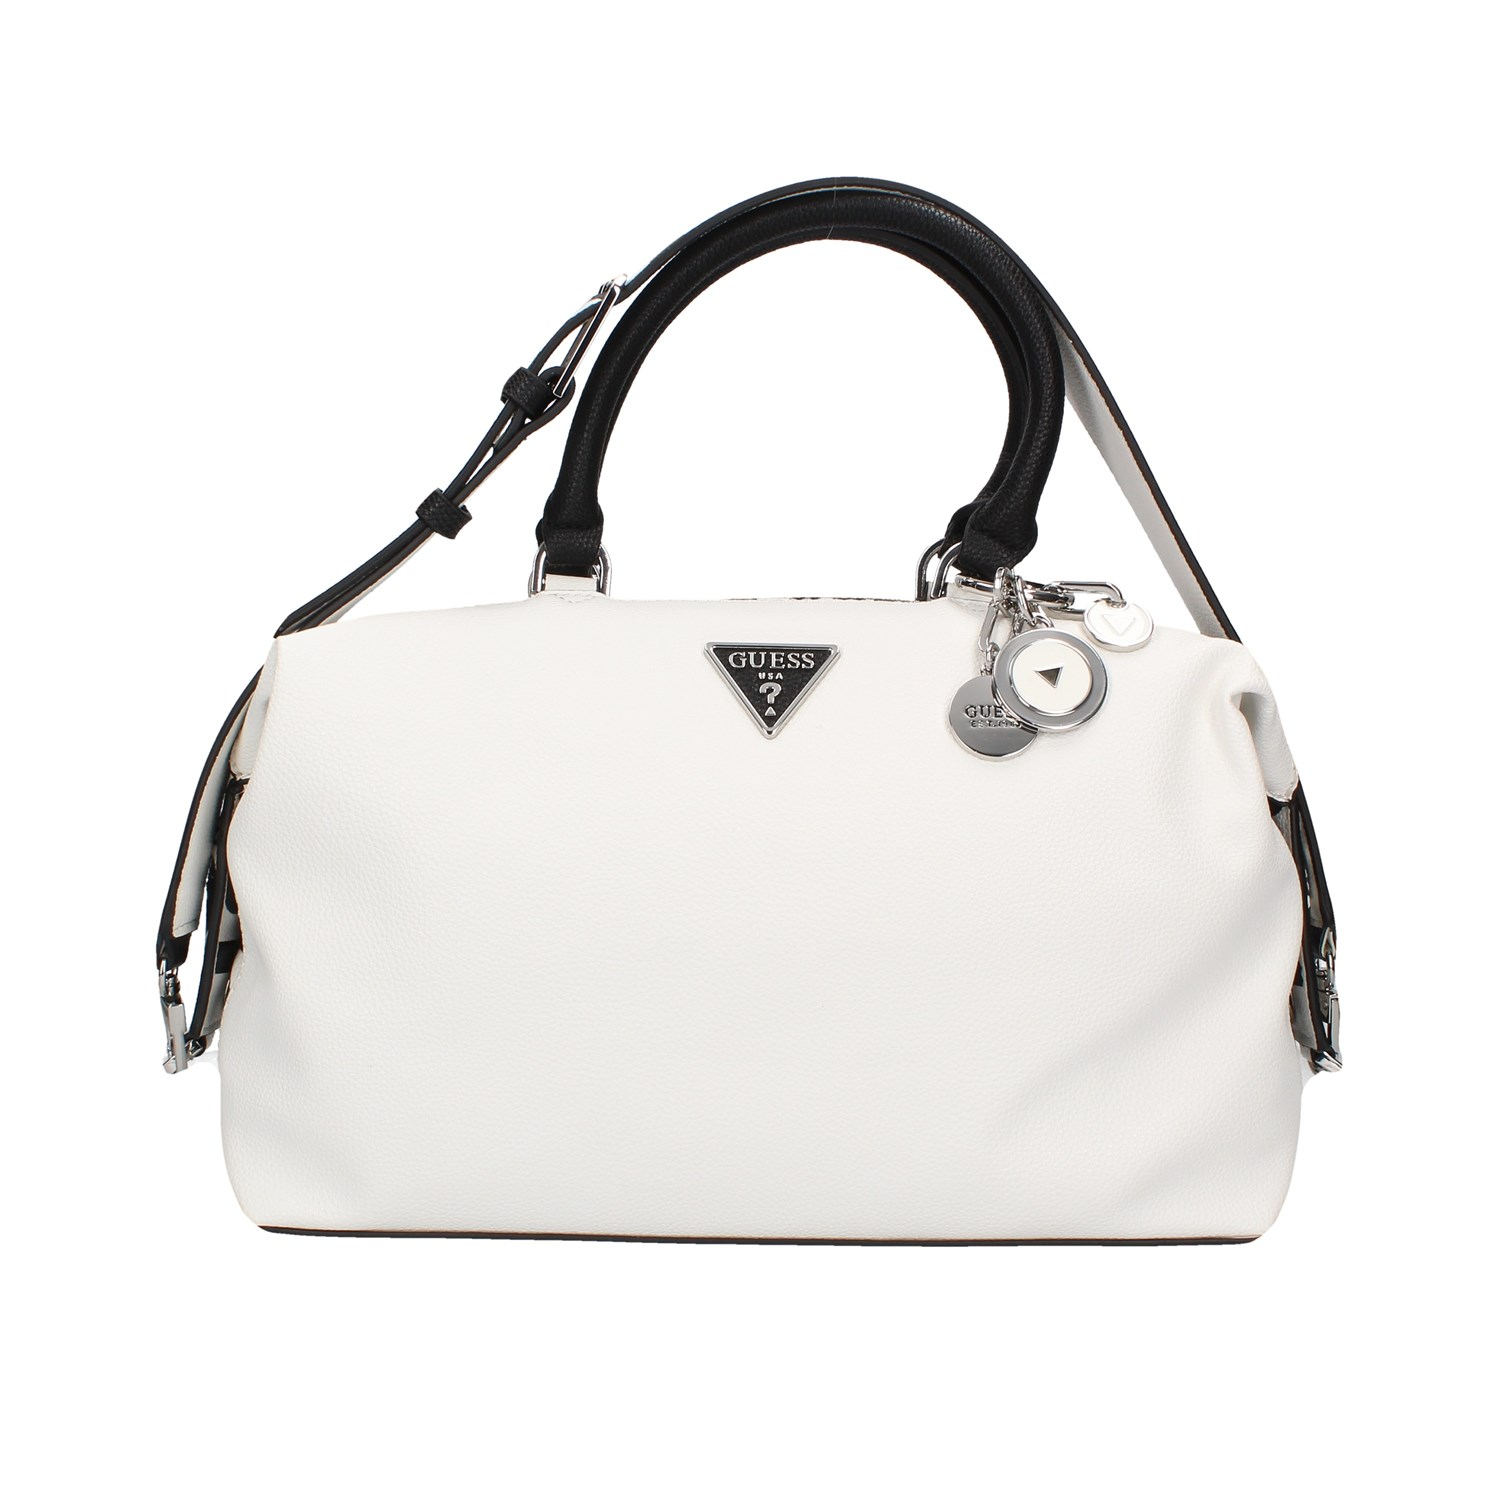 Black and white Guess handbags collection spring summer 2014